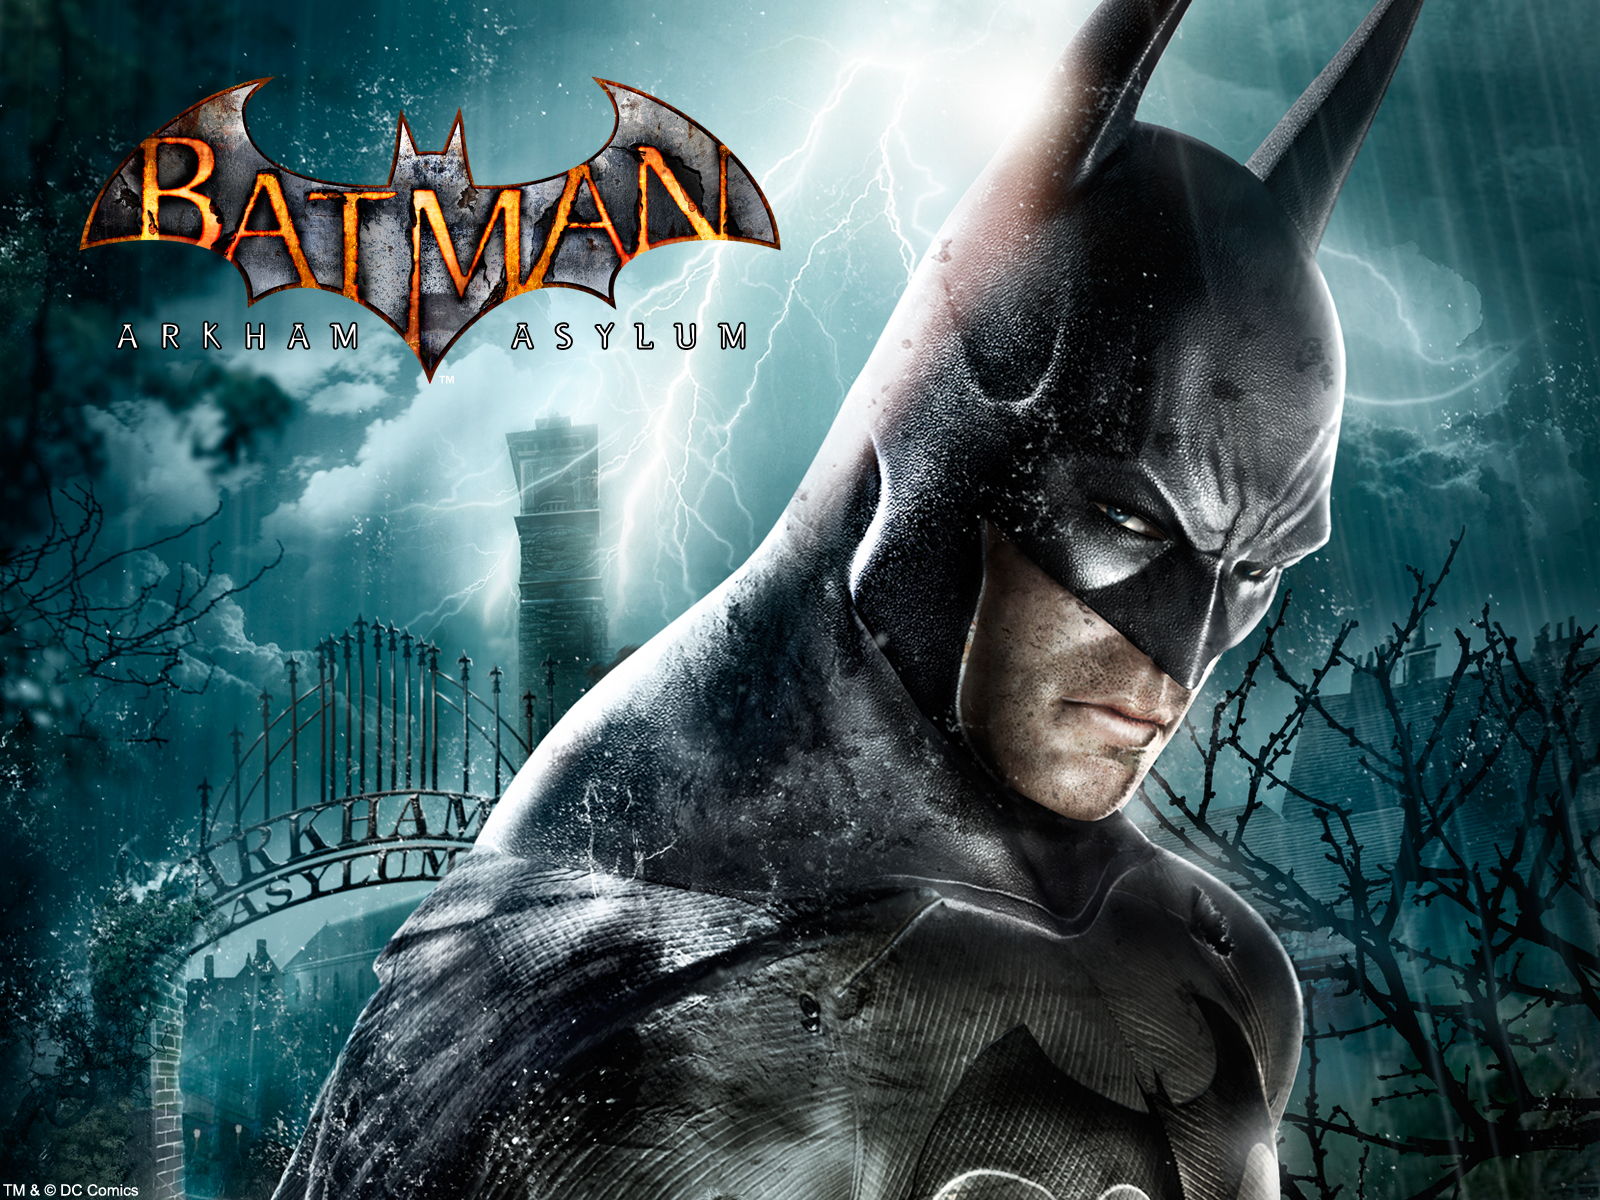 Information Download Batman Arkham City Asylum HD Wallpaper HD Video 1600x1200